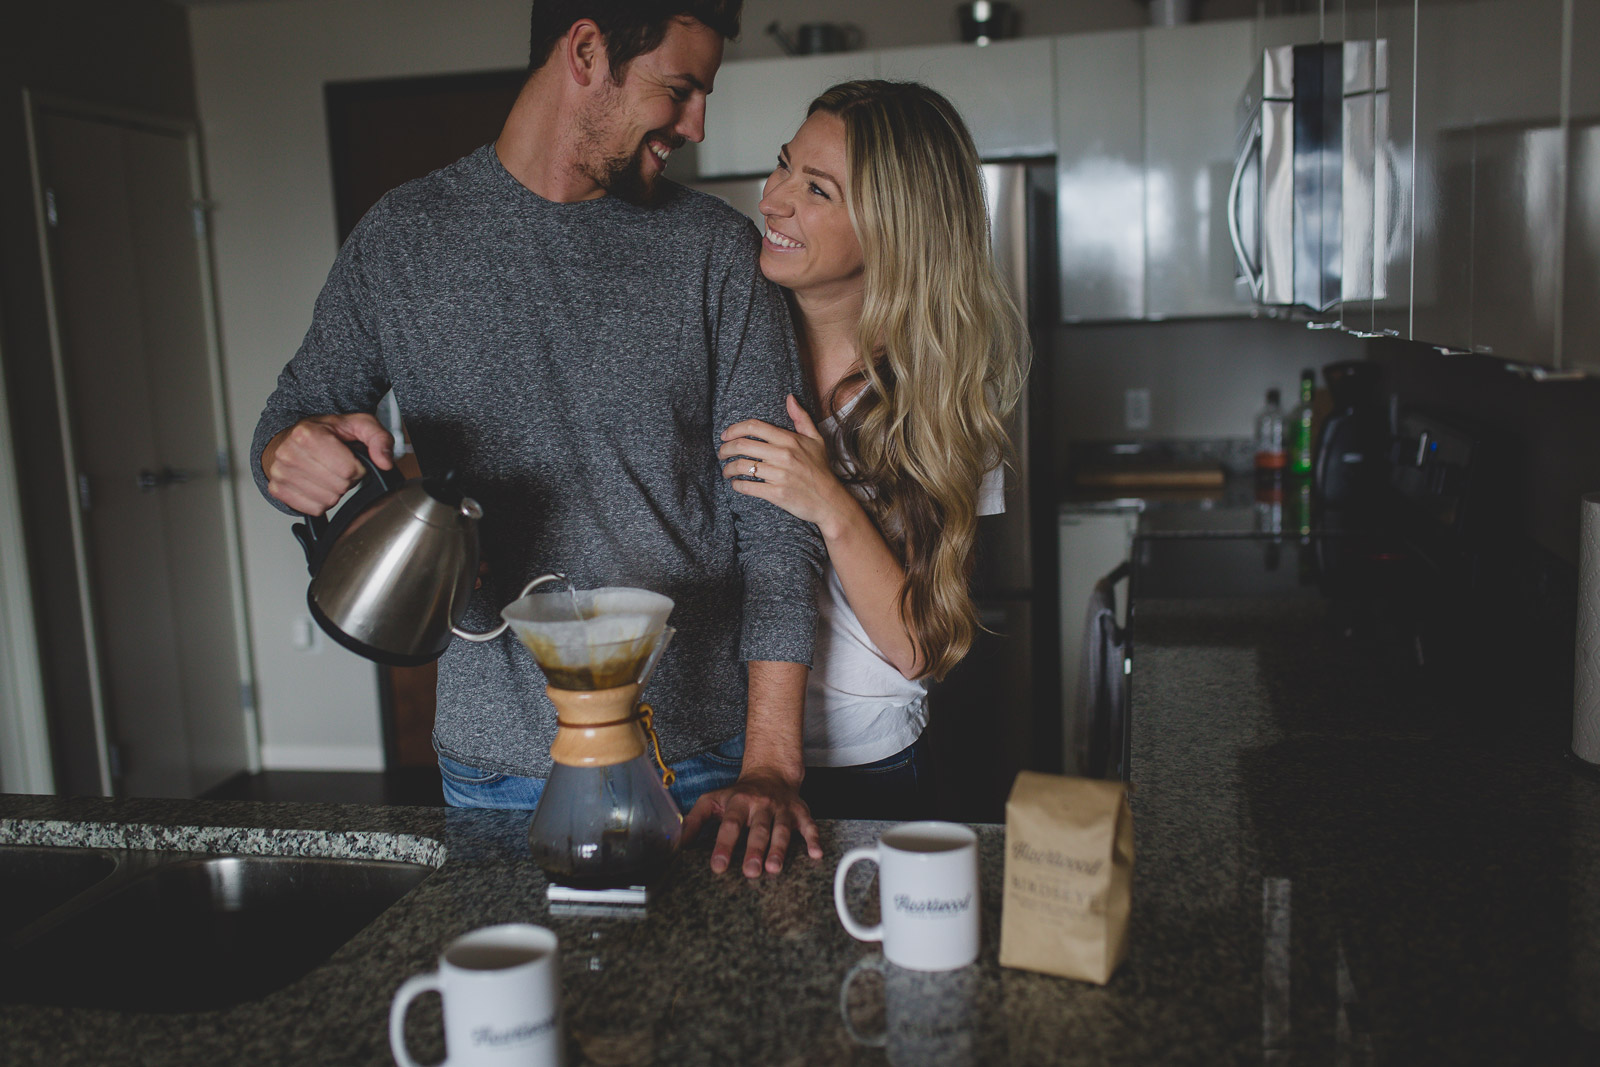 pic of husband and wife making coffee in the kitchen by Tami Keehn, photographing couples